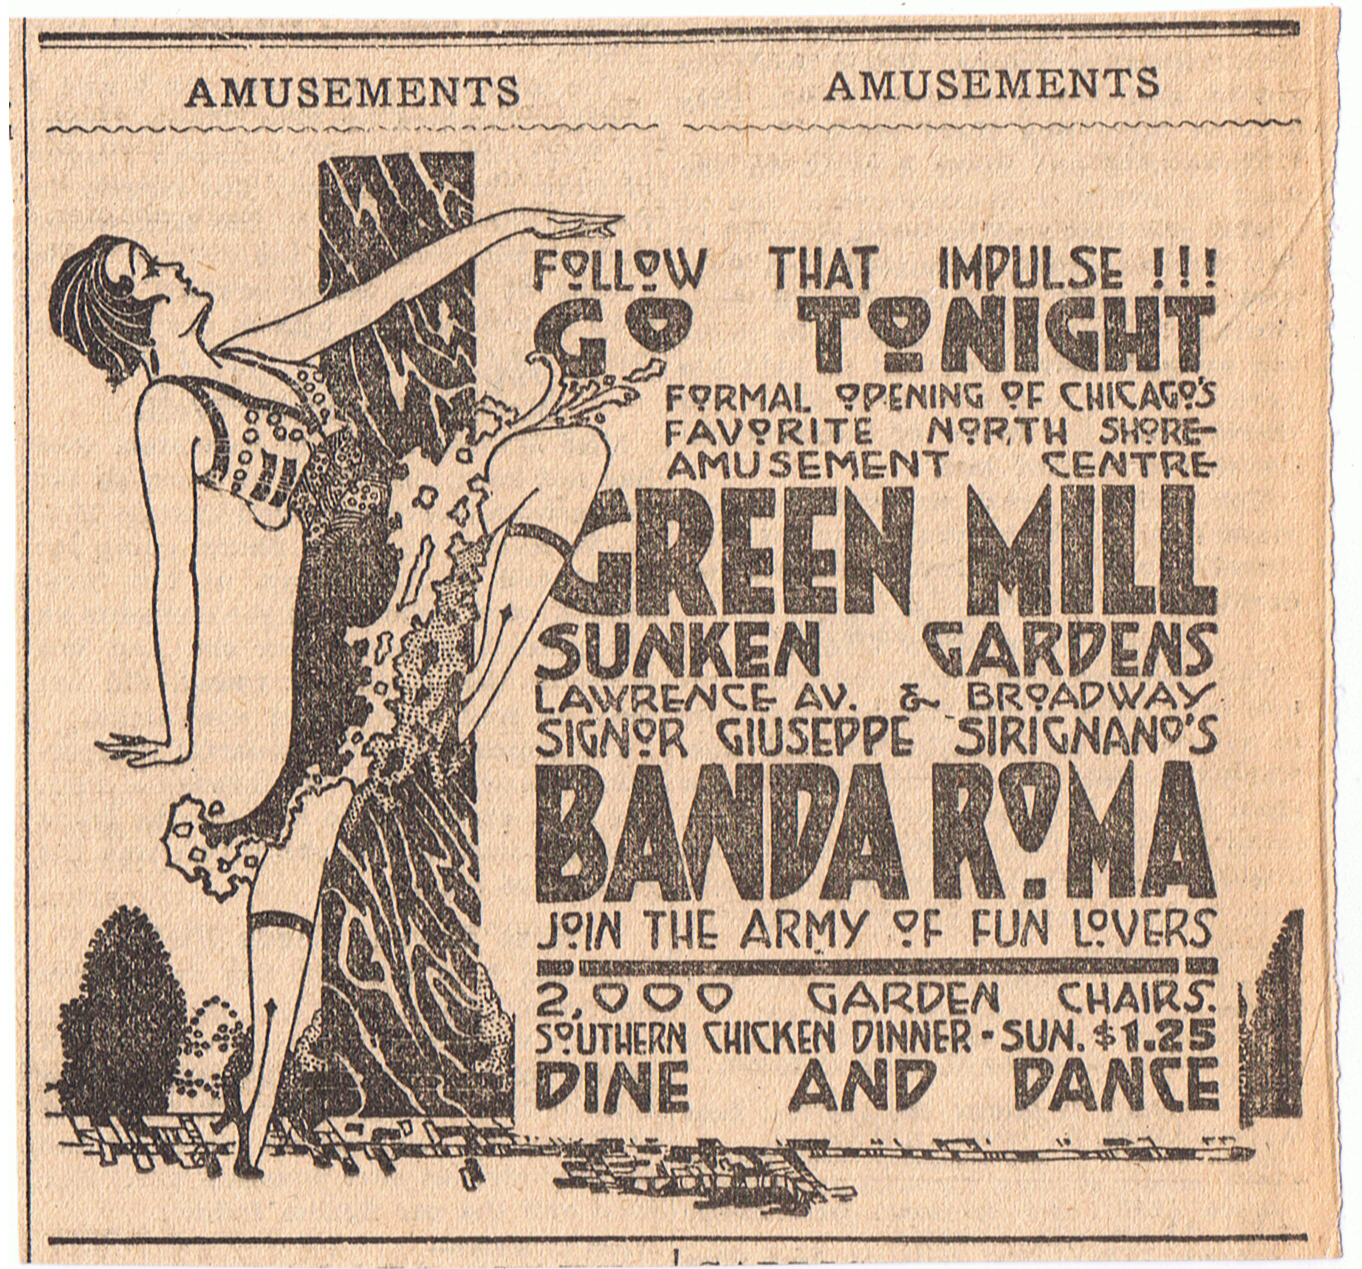 """Green Mill Sunken Gardens,"" from Uptown History, via Make It Like a Man! Free Wi-Fi in Uptown 02"